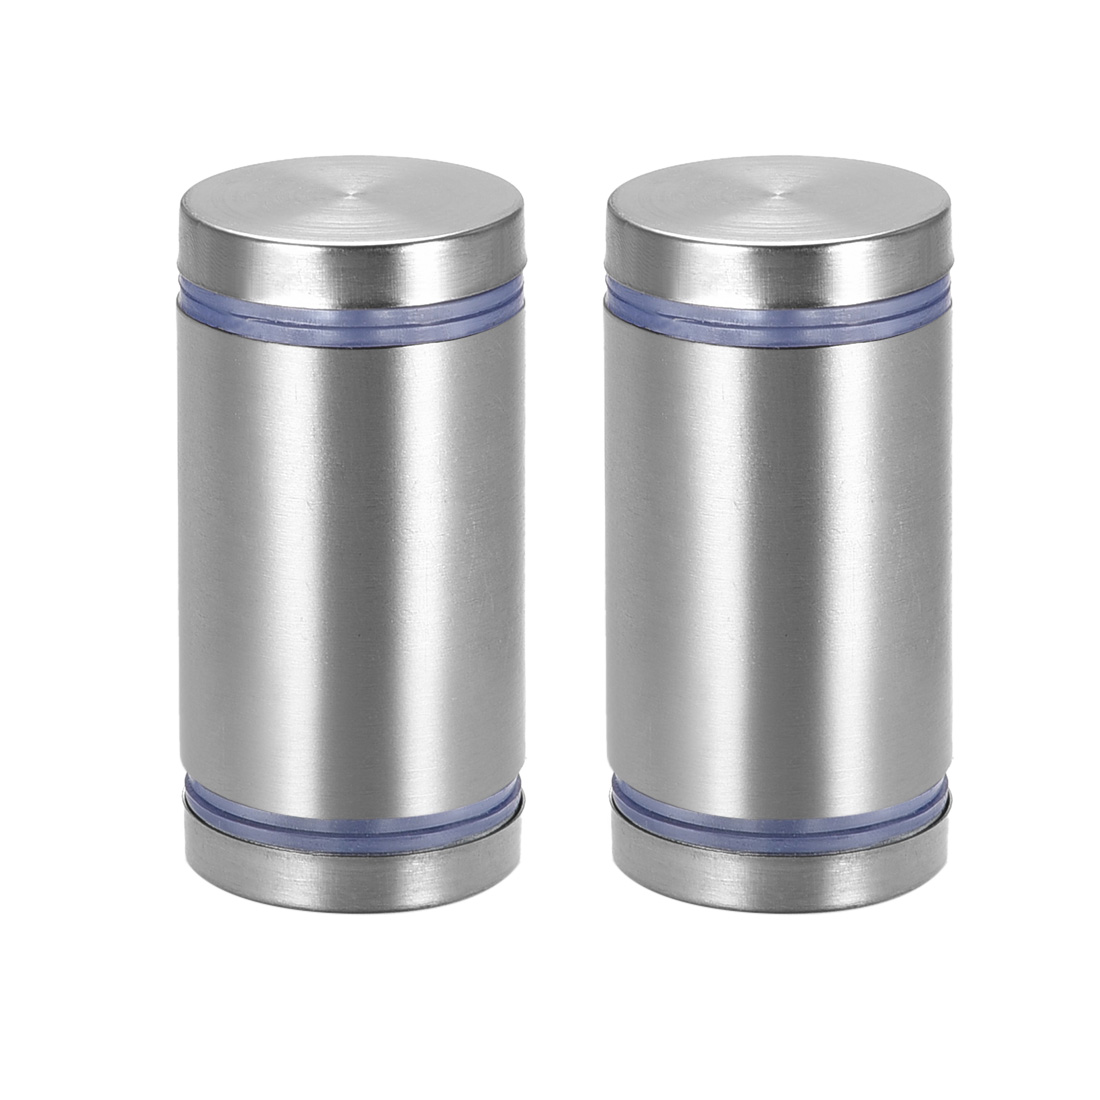 Glass Standoff Double Head Stainless Steel Standoff Holder 25mm x 45mm 2 Pcs